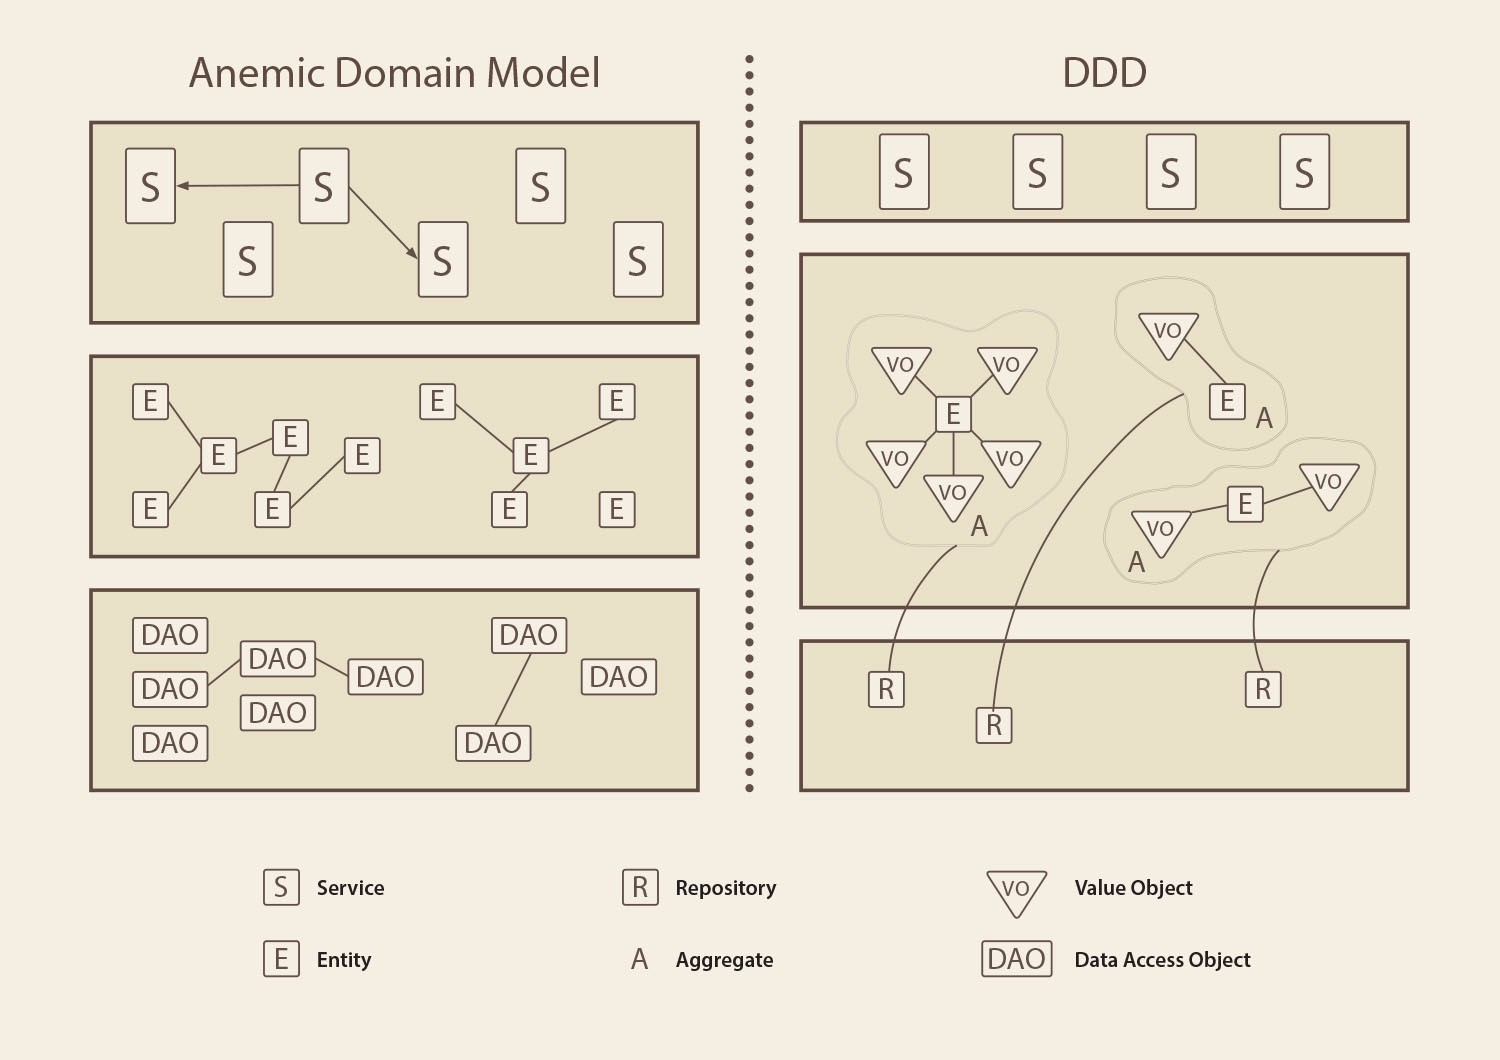 Domain-Driven Design vs  anemic model  How do they differ?